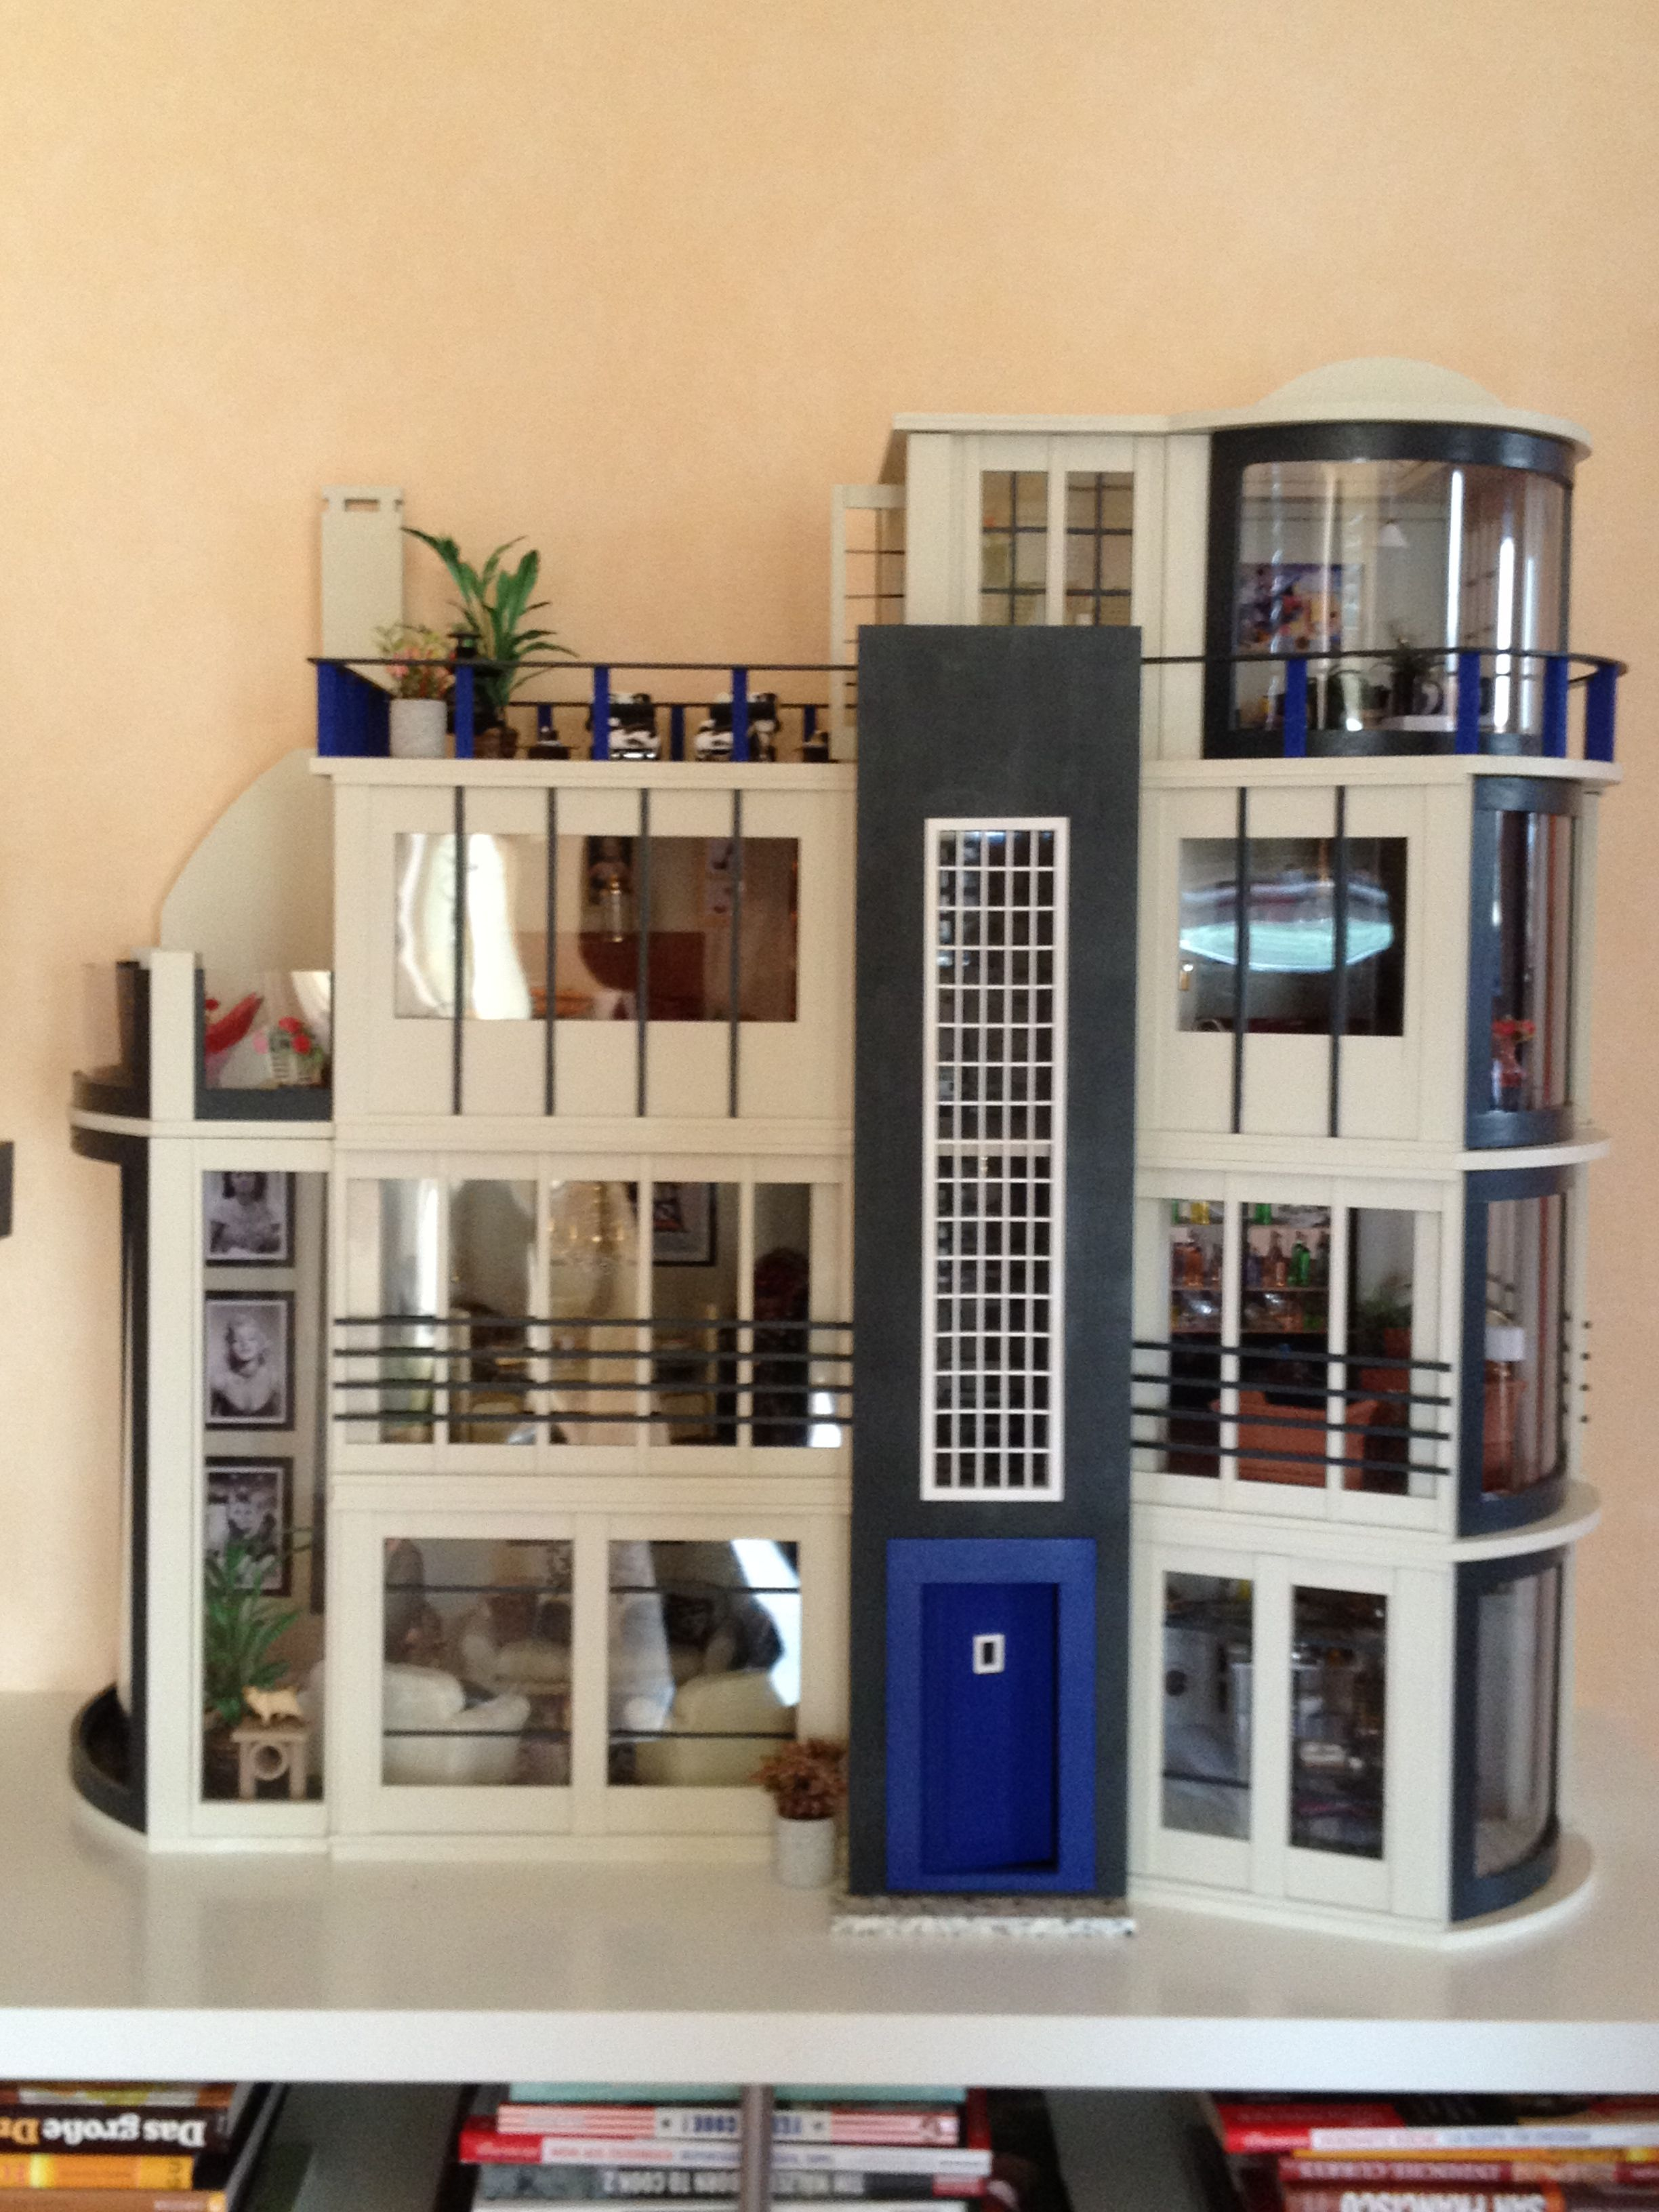 This is my modern version of the Malibu Beach Dollhouse kit by